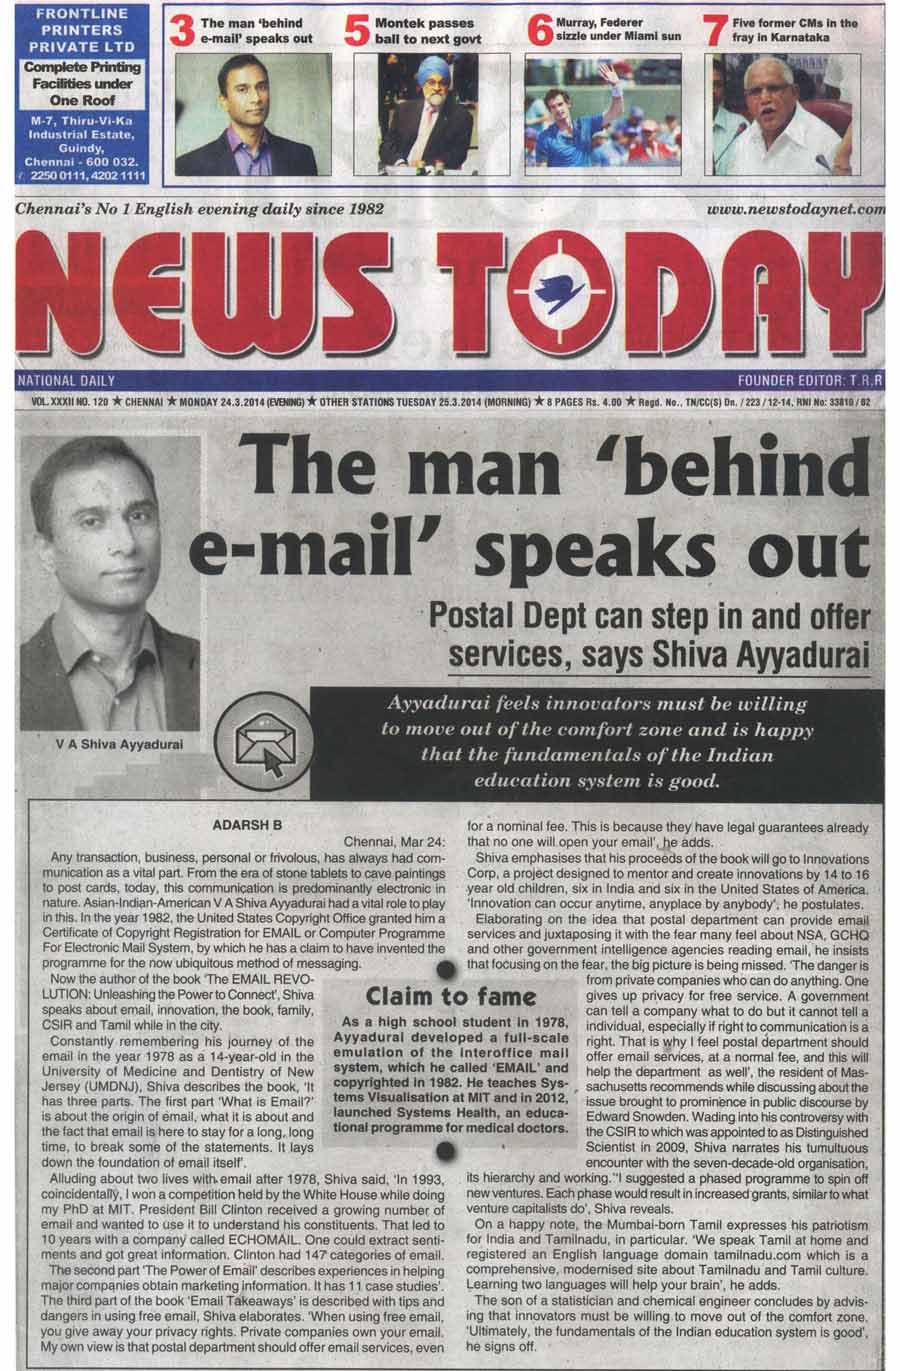 The Man Behind Email Speaks Out